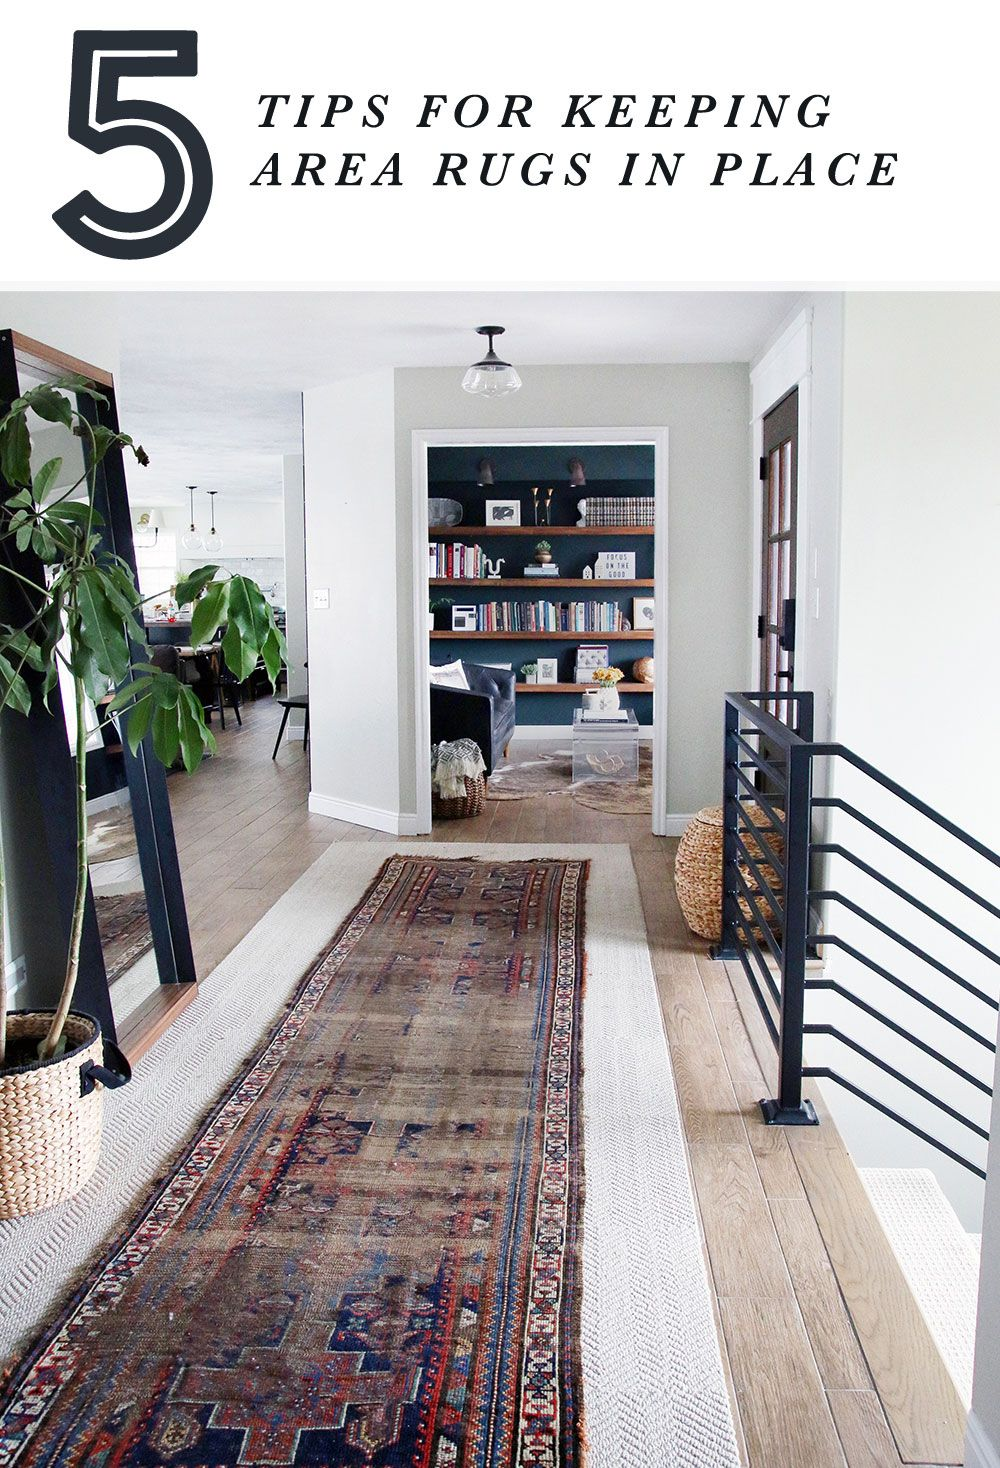 5 Tips For Keeping Area Rugs Exactly Where You Want Them